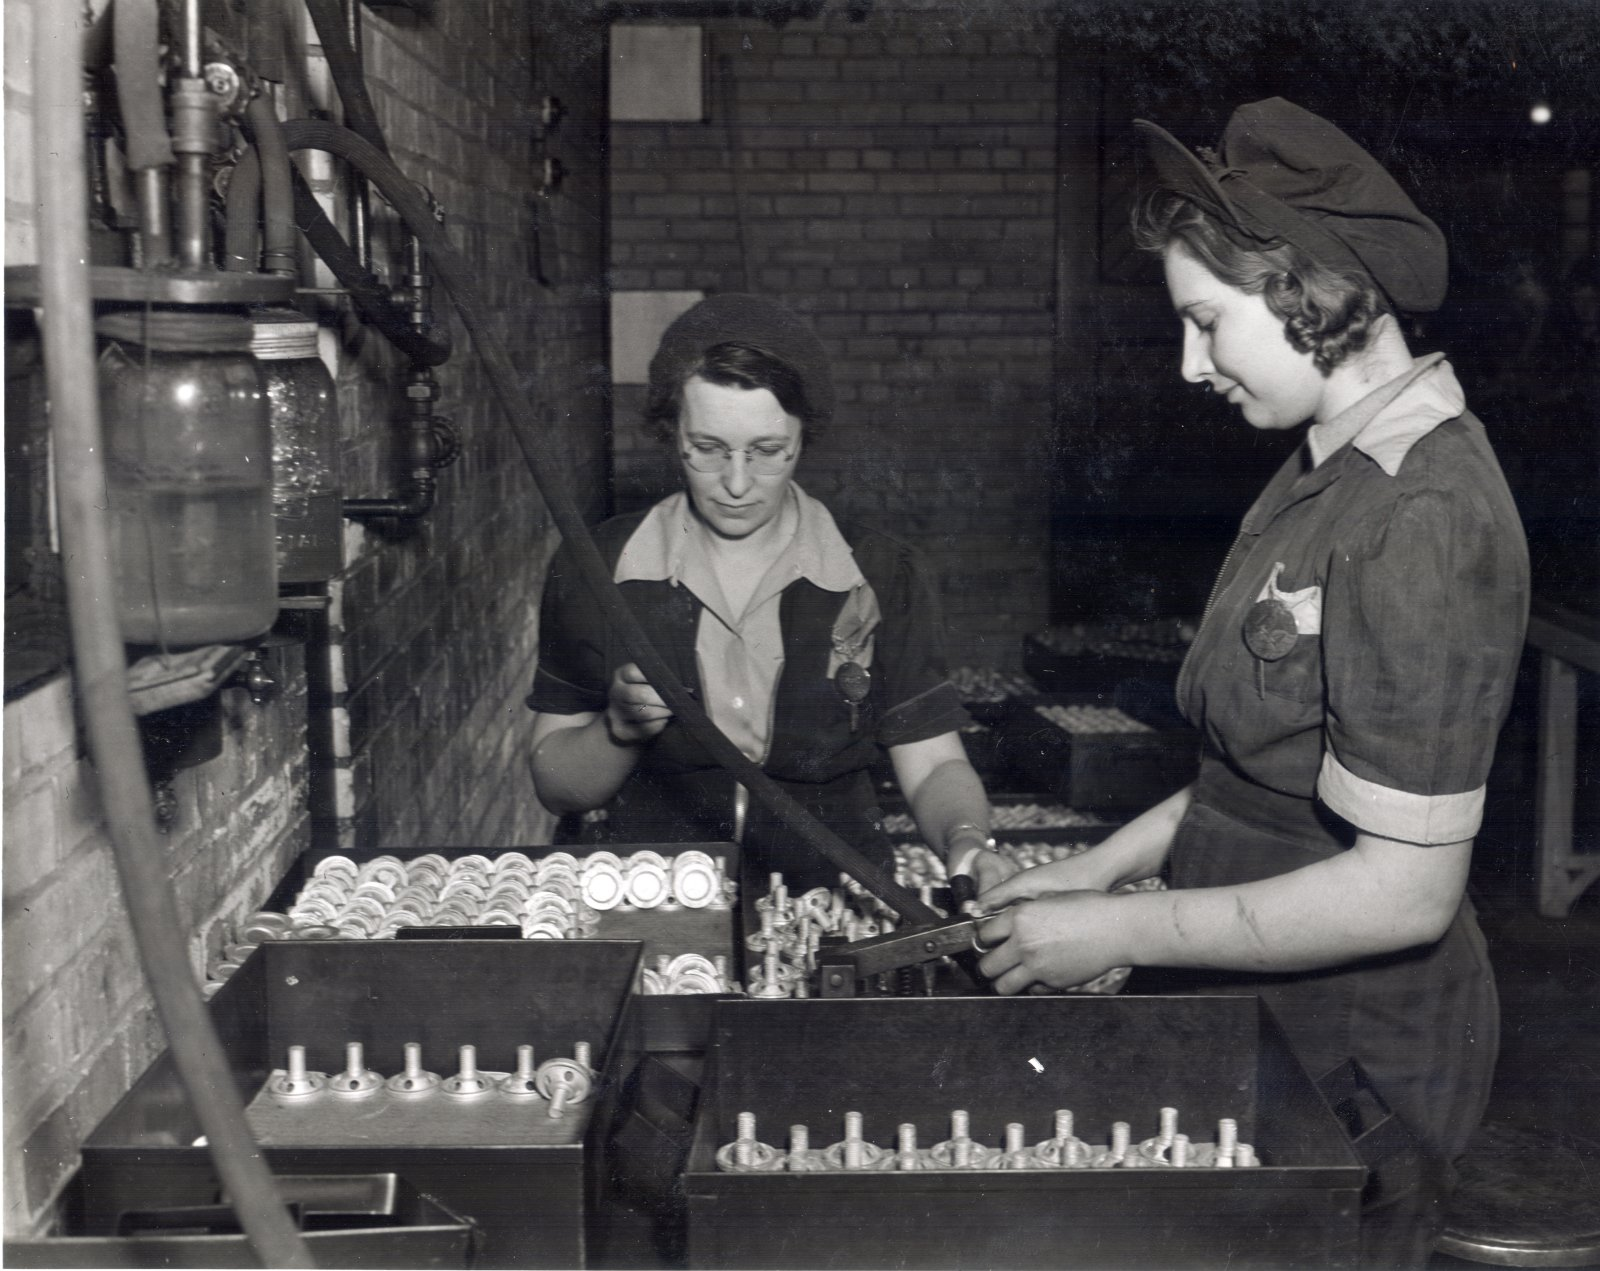 Employees Margaret MacLeod (left) and Bernice Keller (right) testing 2 inch smoke bomb adapters. Courtesy the Waterloo Public Library.